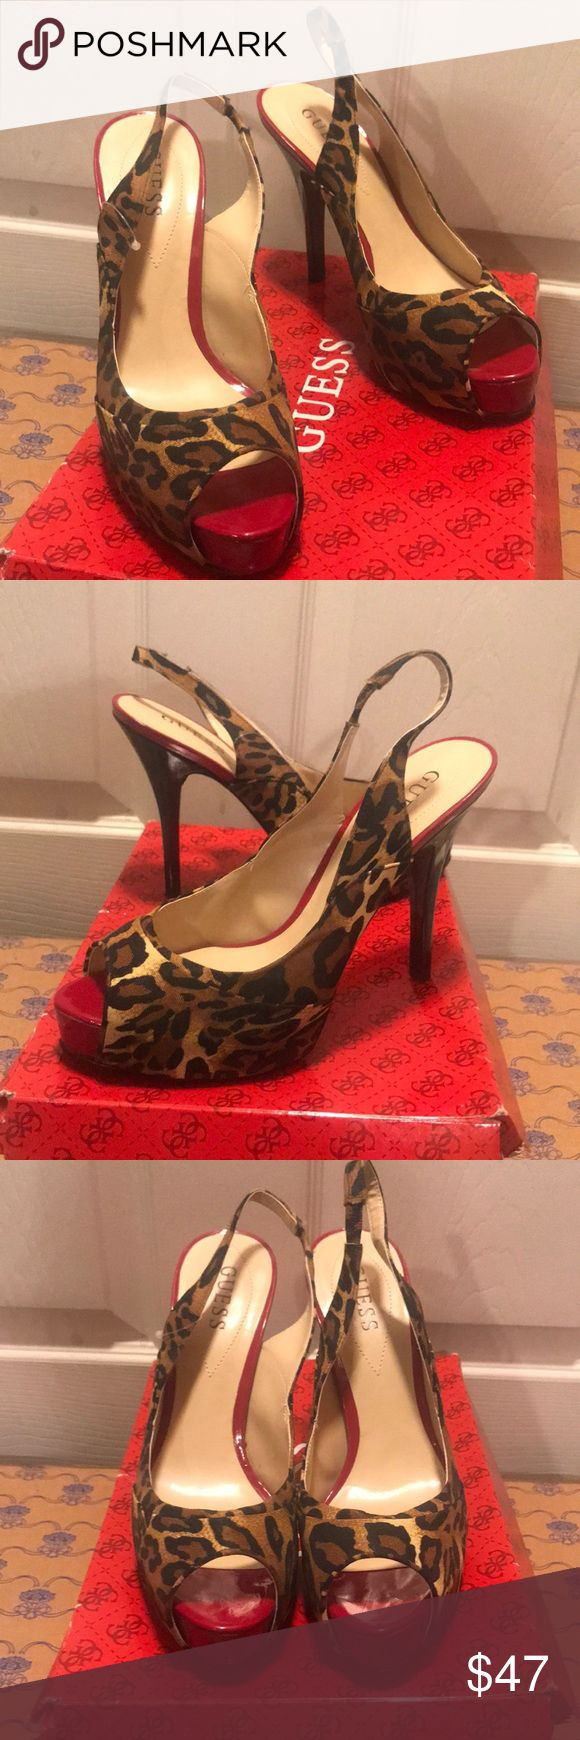 Guess Leopard heels Guess Leopard and red platform heels  Brand new never worn .  Original box is alittle broken but shoes are fine Guess Shoes Heels